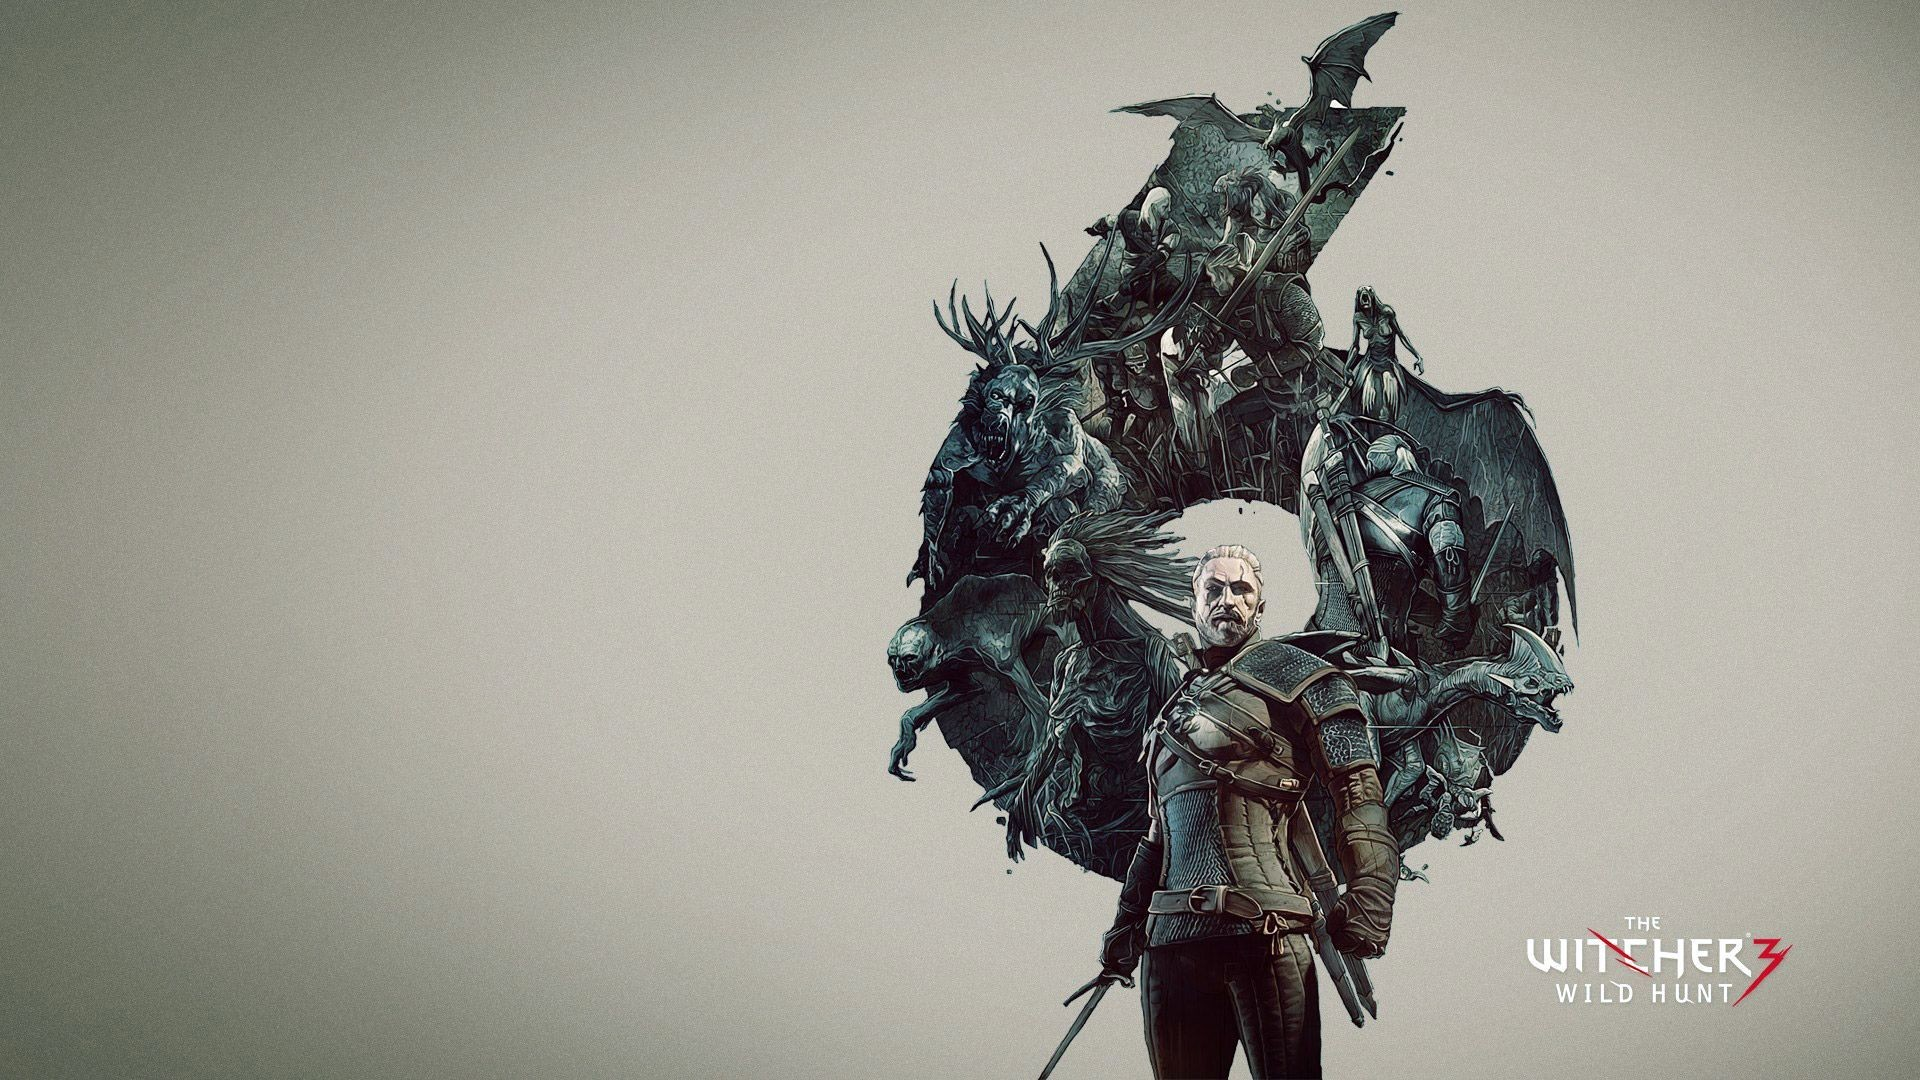 the-witcher-3-wild-hunt-wallpaper-high-definition.